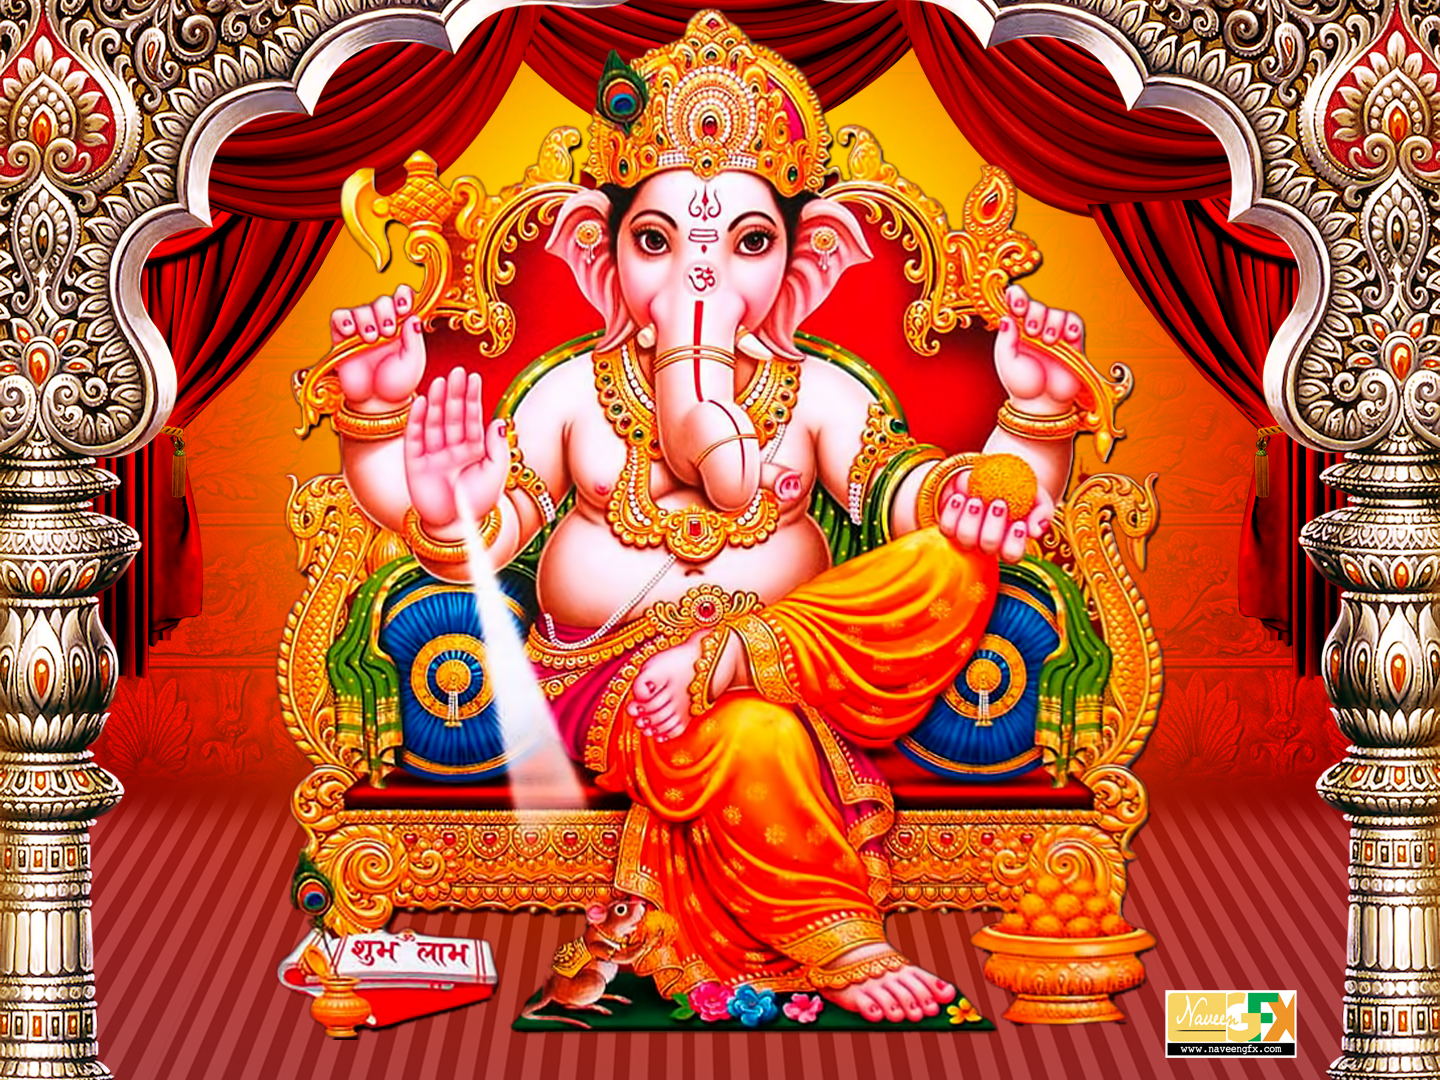 Hd wallpaper ganesh - Lord Ganesha Hd Images Wallpapers Free Downloads Naveengfx